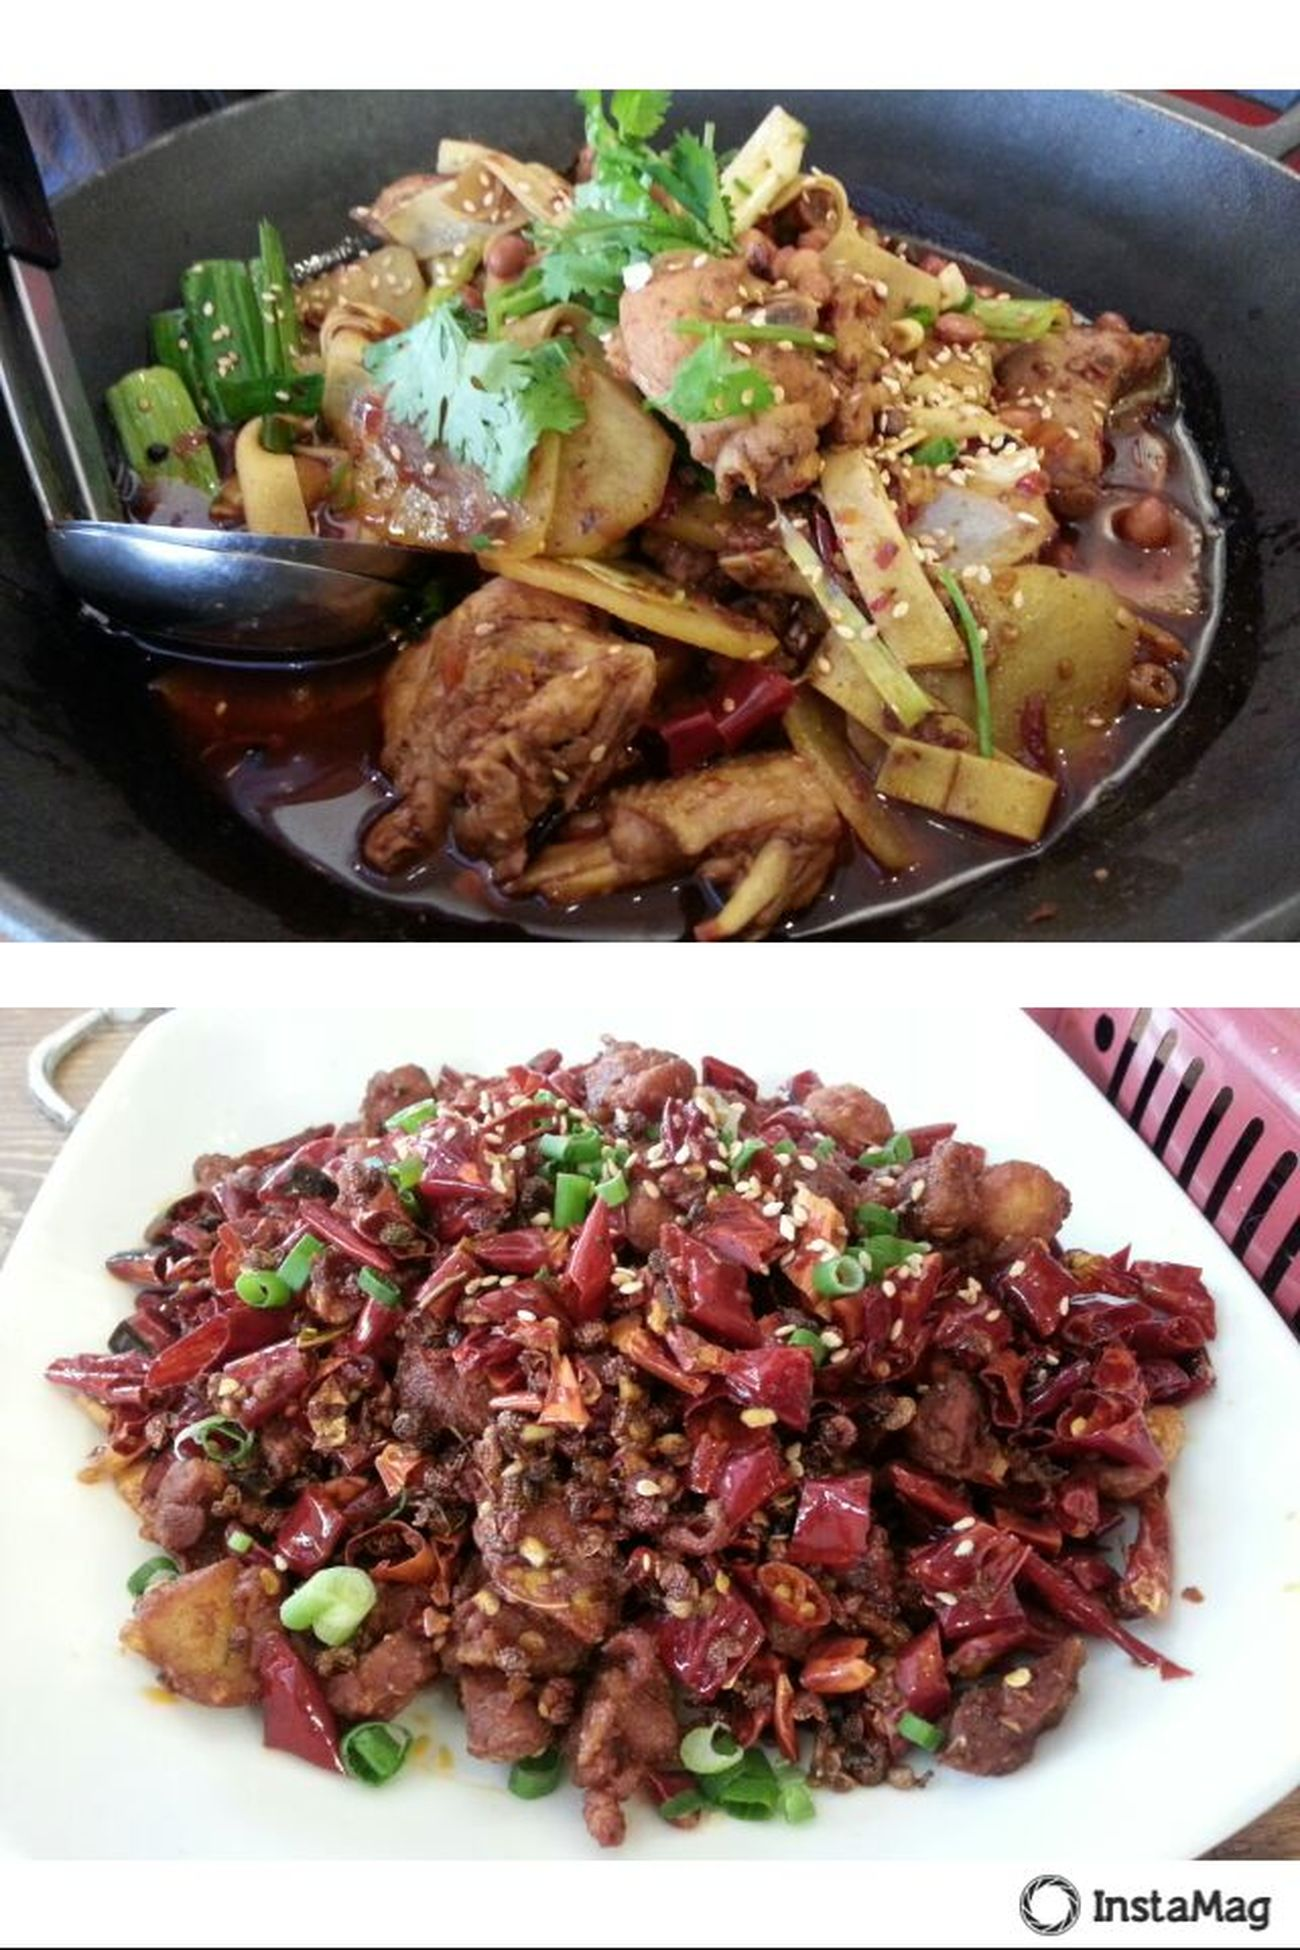 Singapore Bugis Fat Bird Hot Pot Spicy Chicken Cubes 싱가폴 치킨핫팟